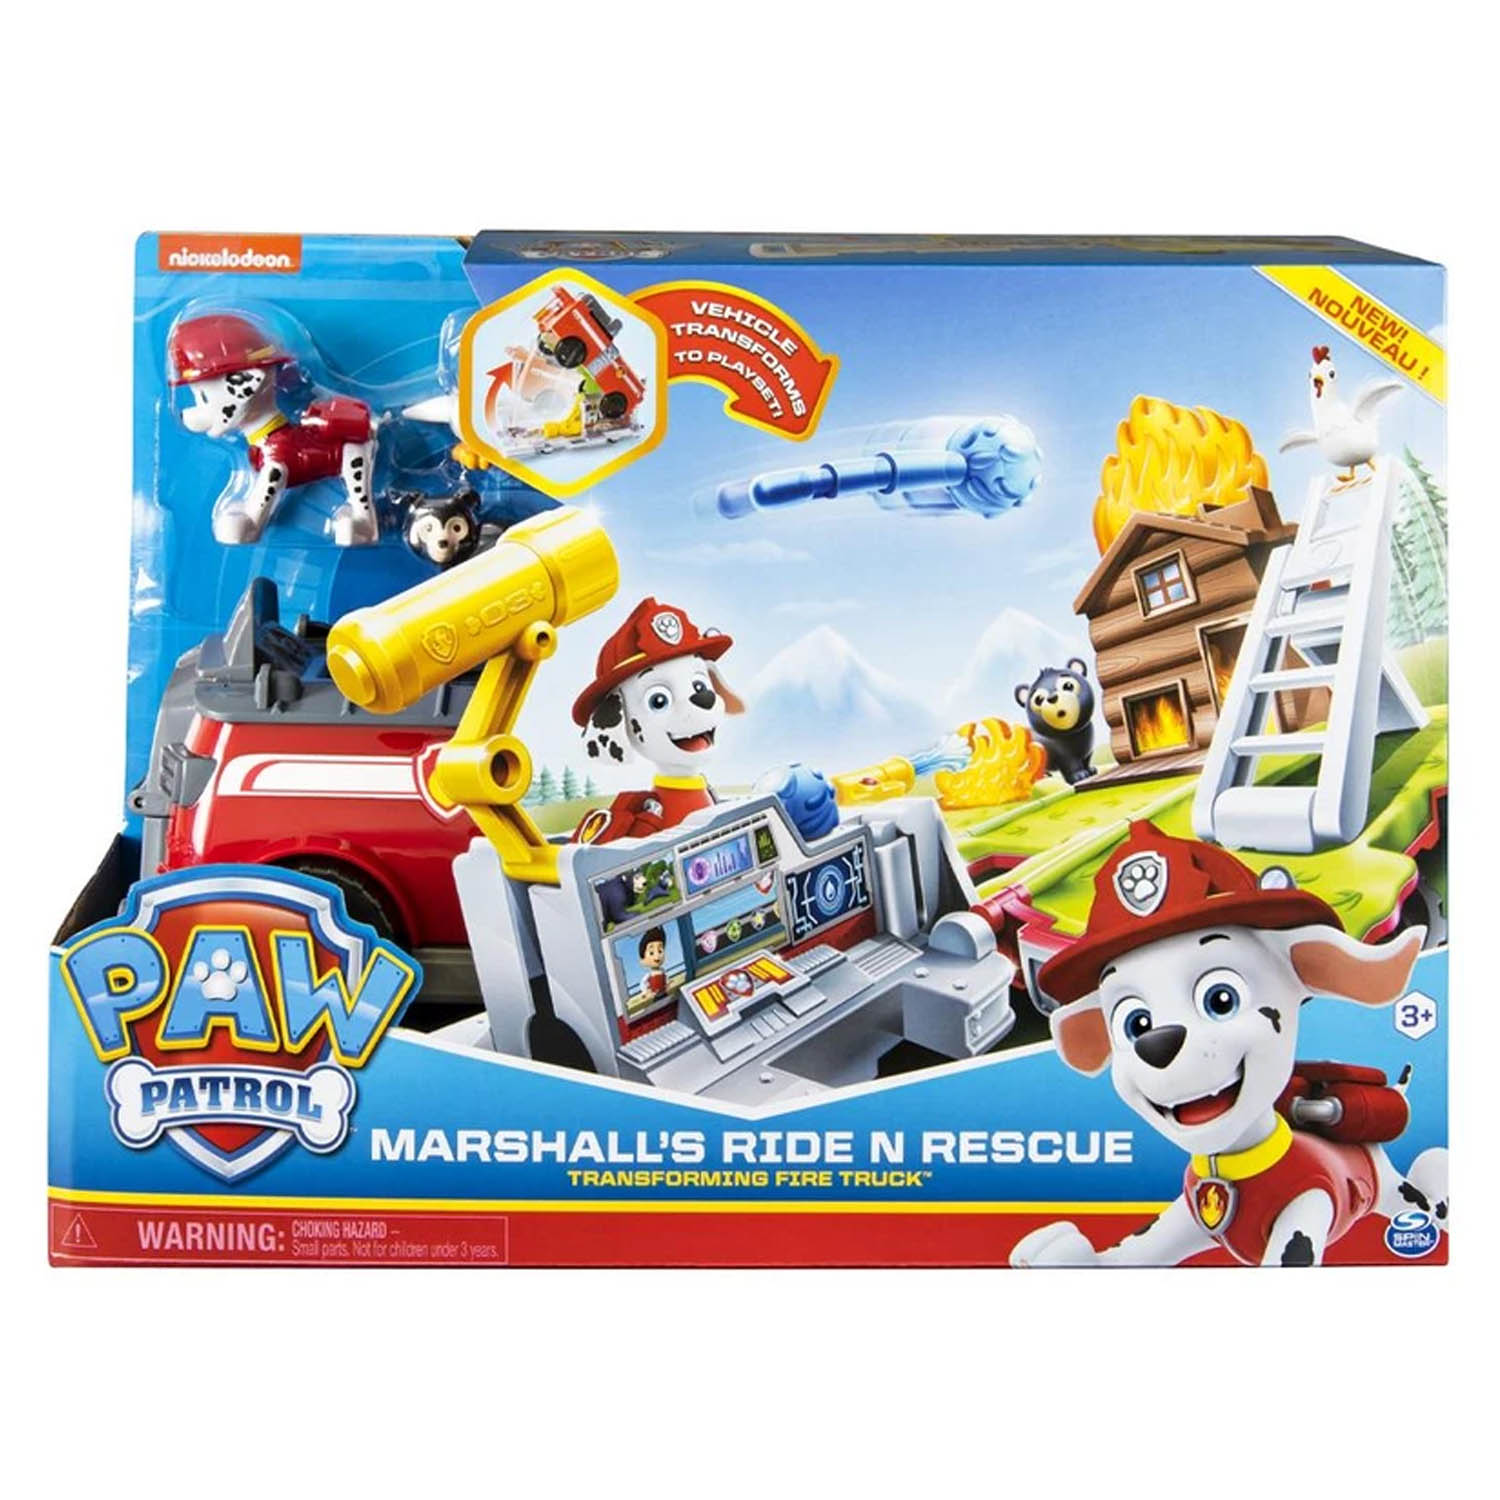 Paw Patrol Marshall's Ride N Rescue Transforming Fire Truck